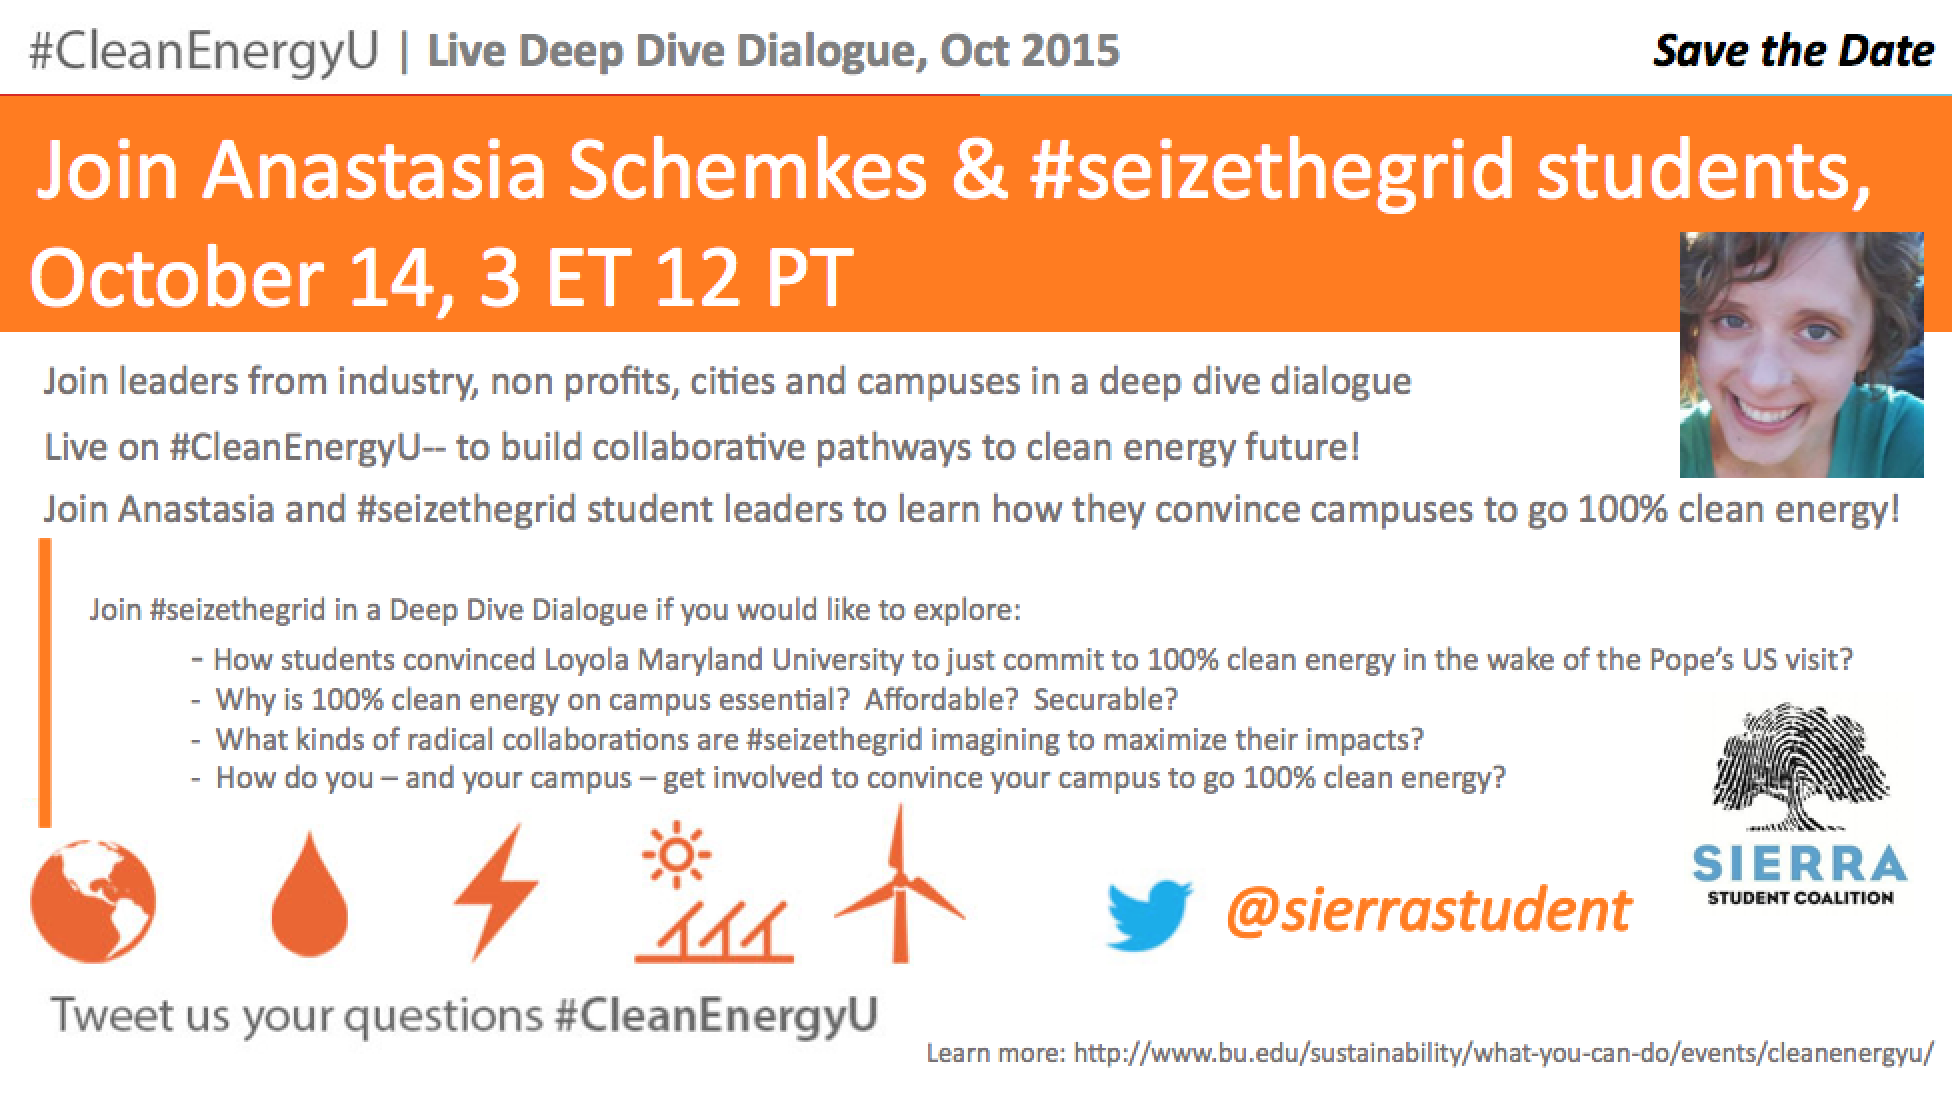 Join #Seizethegrid for #CleanEnergyU Deep Dive Dialogue Oct 14 3ET12PT